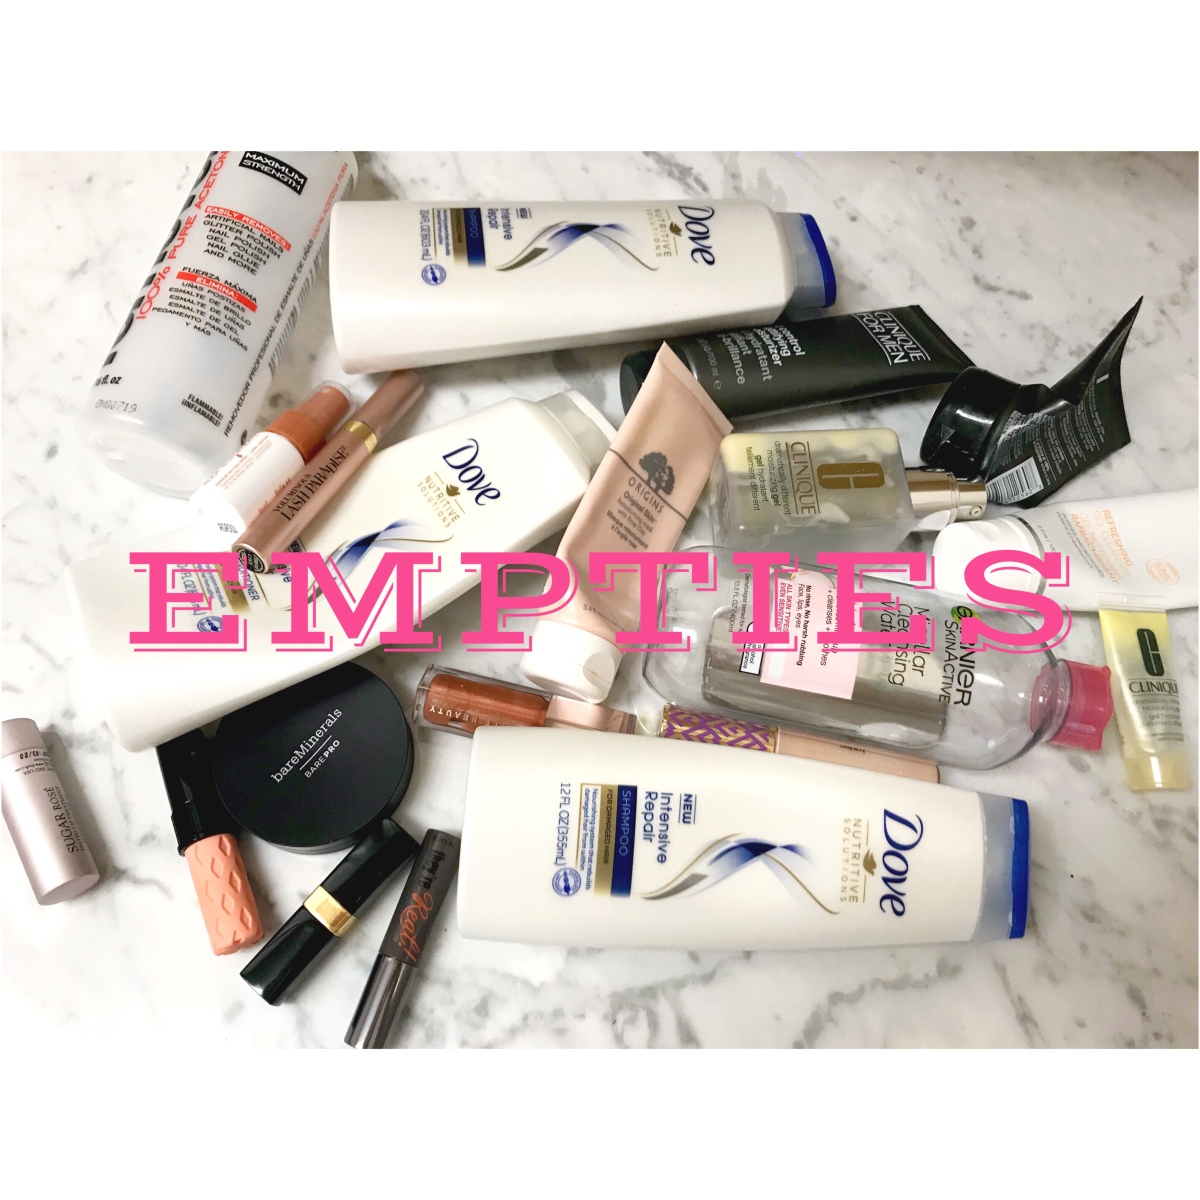 Products I've Used Up | Quarterly Empties